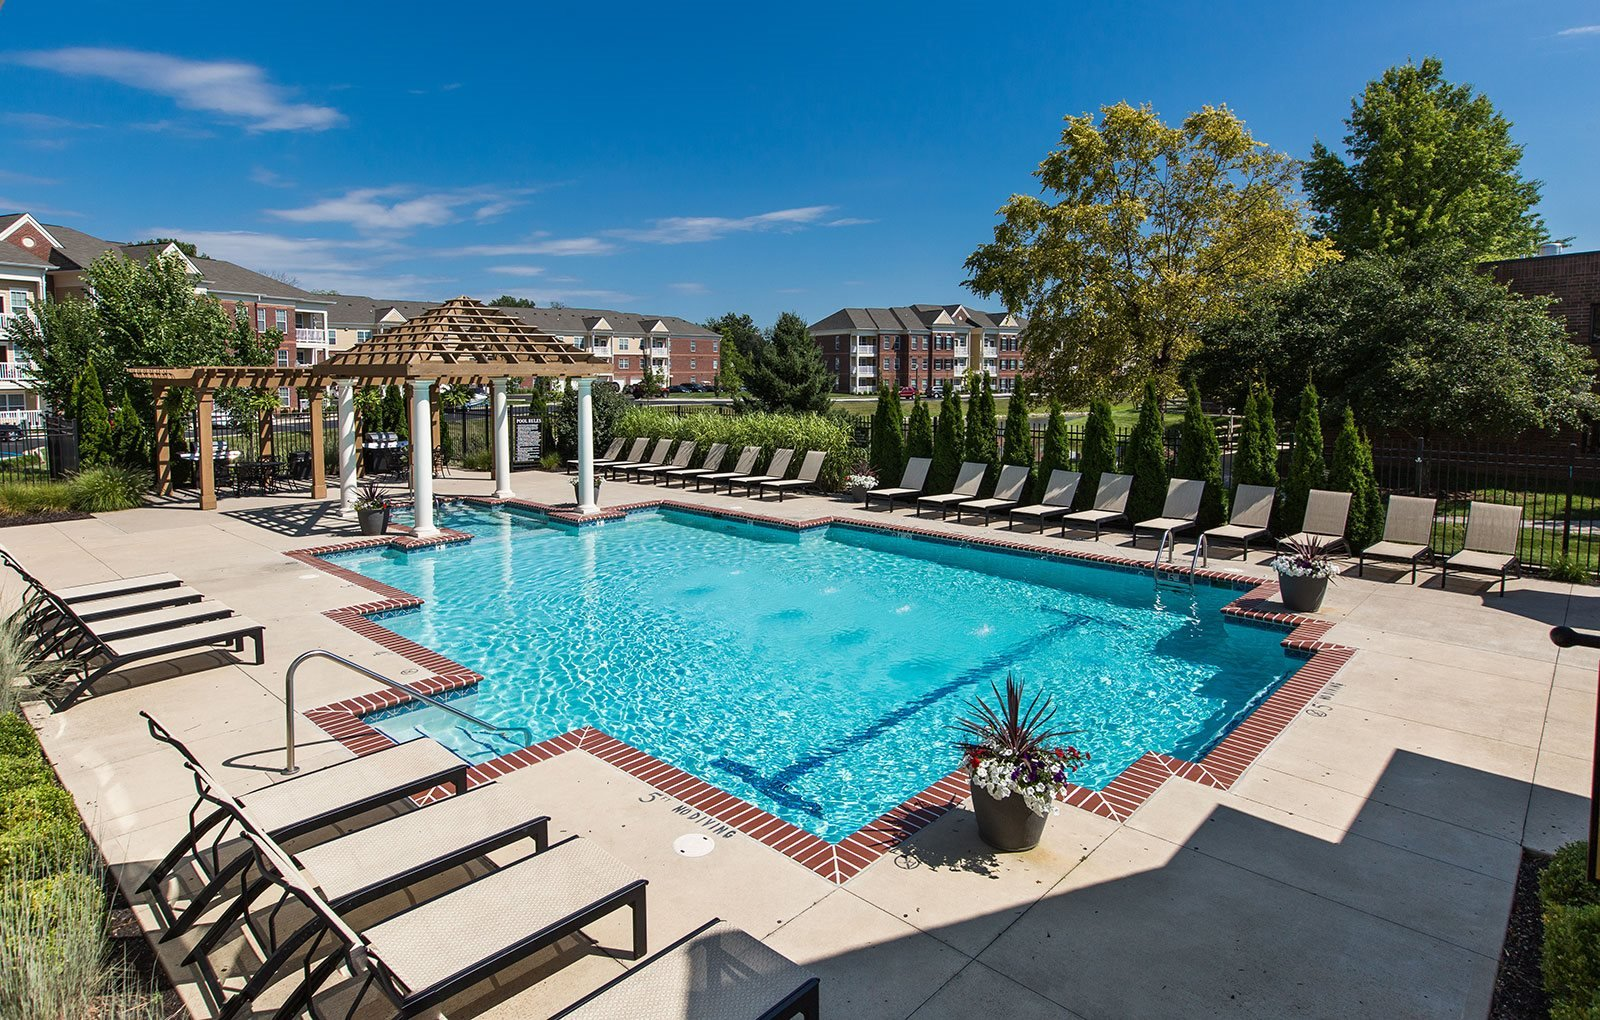 Large Outdoor Pool and Sundeck Areas at Alexandria of Carmel Apartments, Carmel, IN, 46032